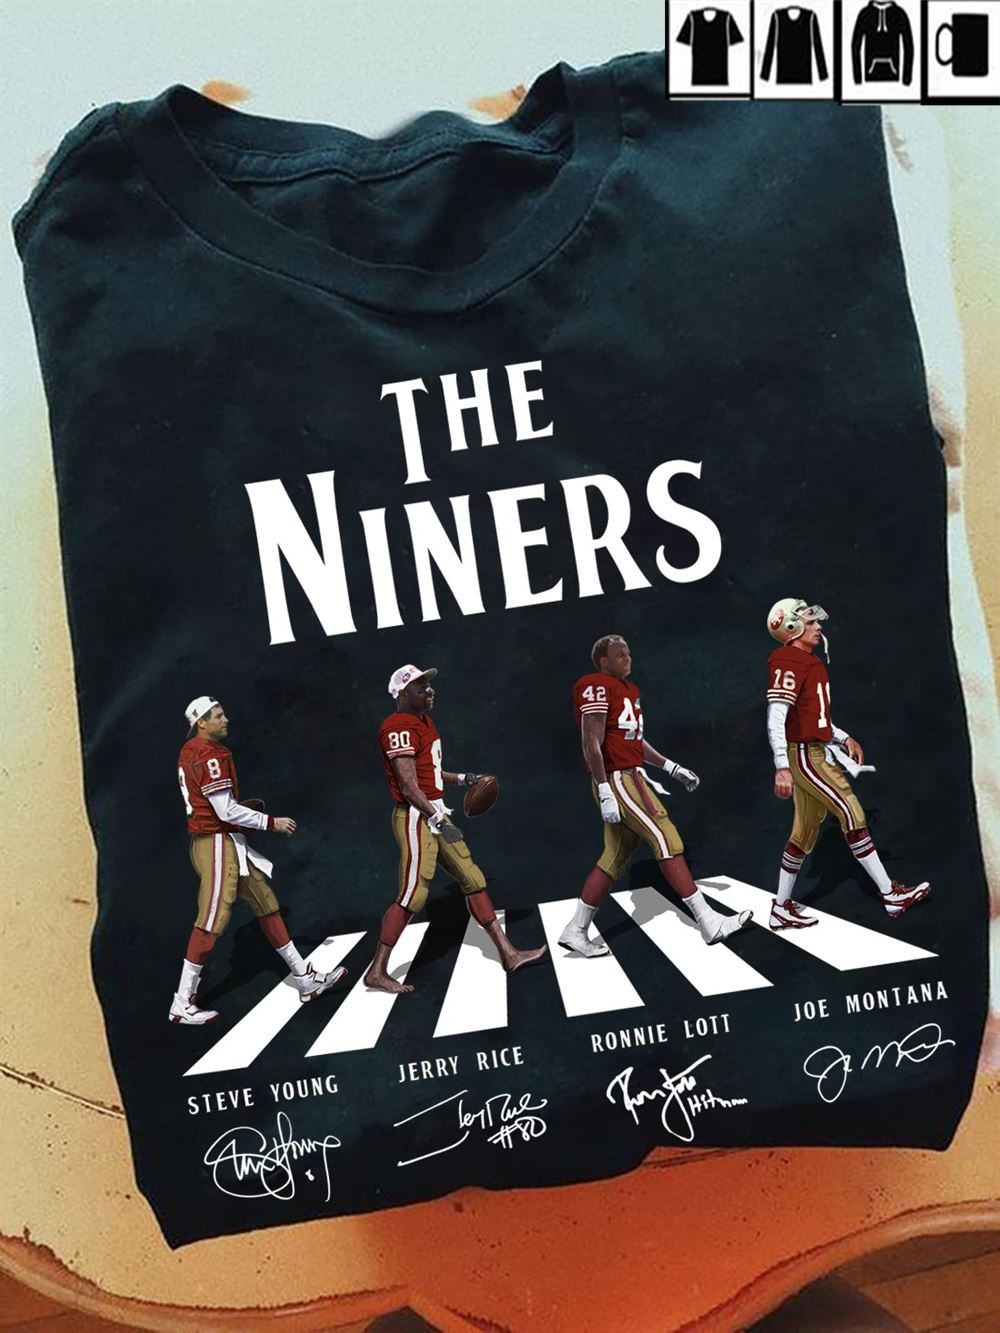 San Francisco 49ers The Niners Signatures The Beatles Abbey Road Graphic T Shirt Hoodie Tank Top Size Up To 5xl